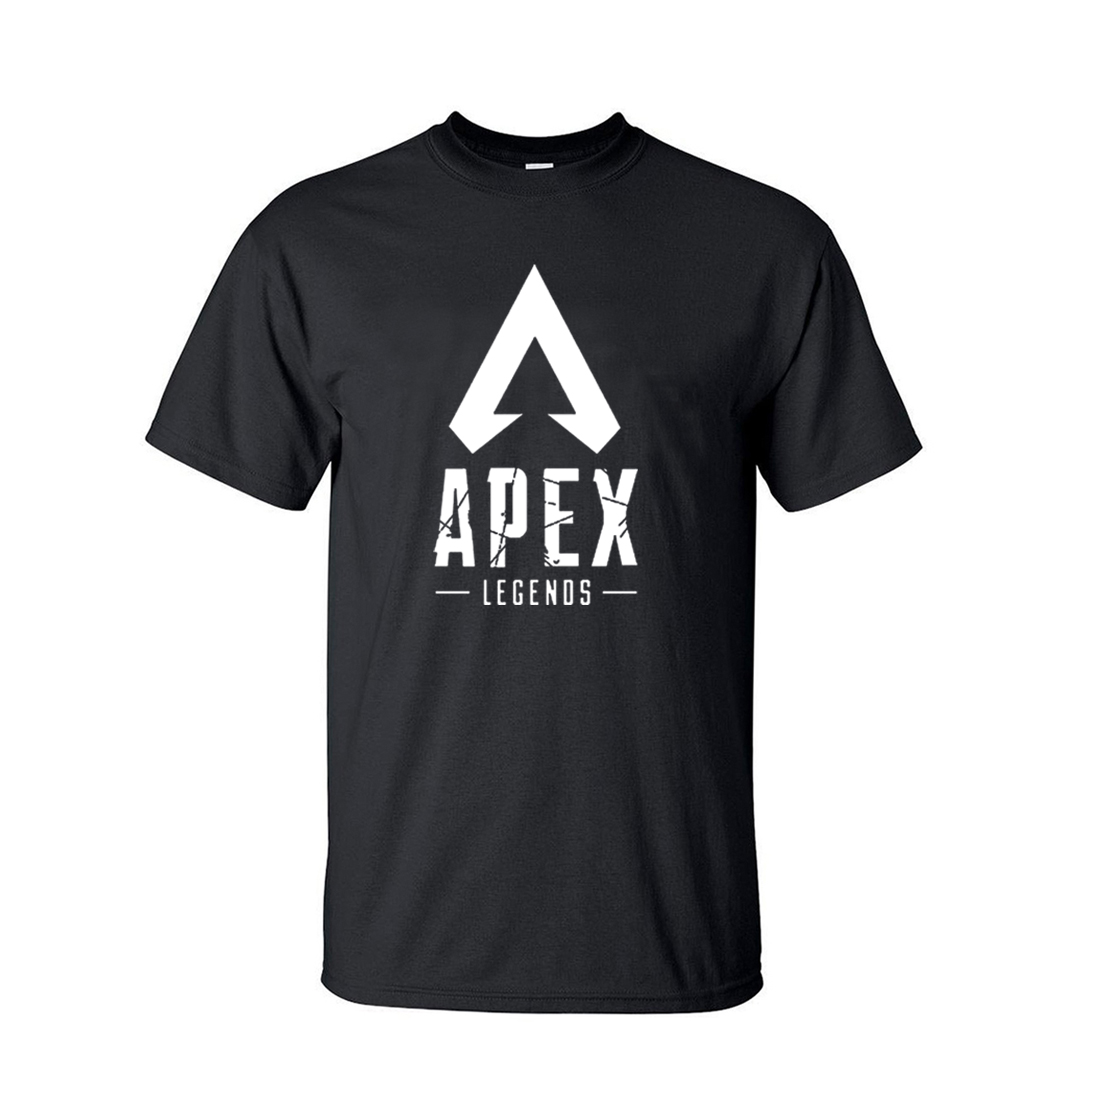 Apex Legends Game   T  -  Shirt   Men 2019 Summer Hot Men's Short Sleeve   T     Shirts   Black Tops Tees For Adult Gaming   Shirt   Plus Size CM01